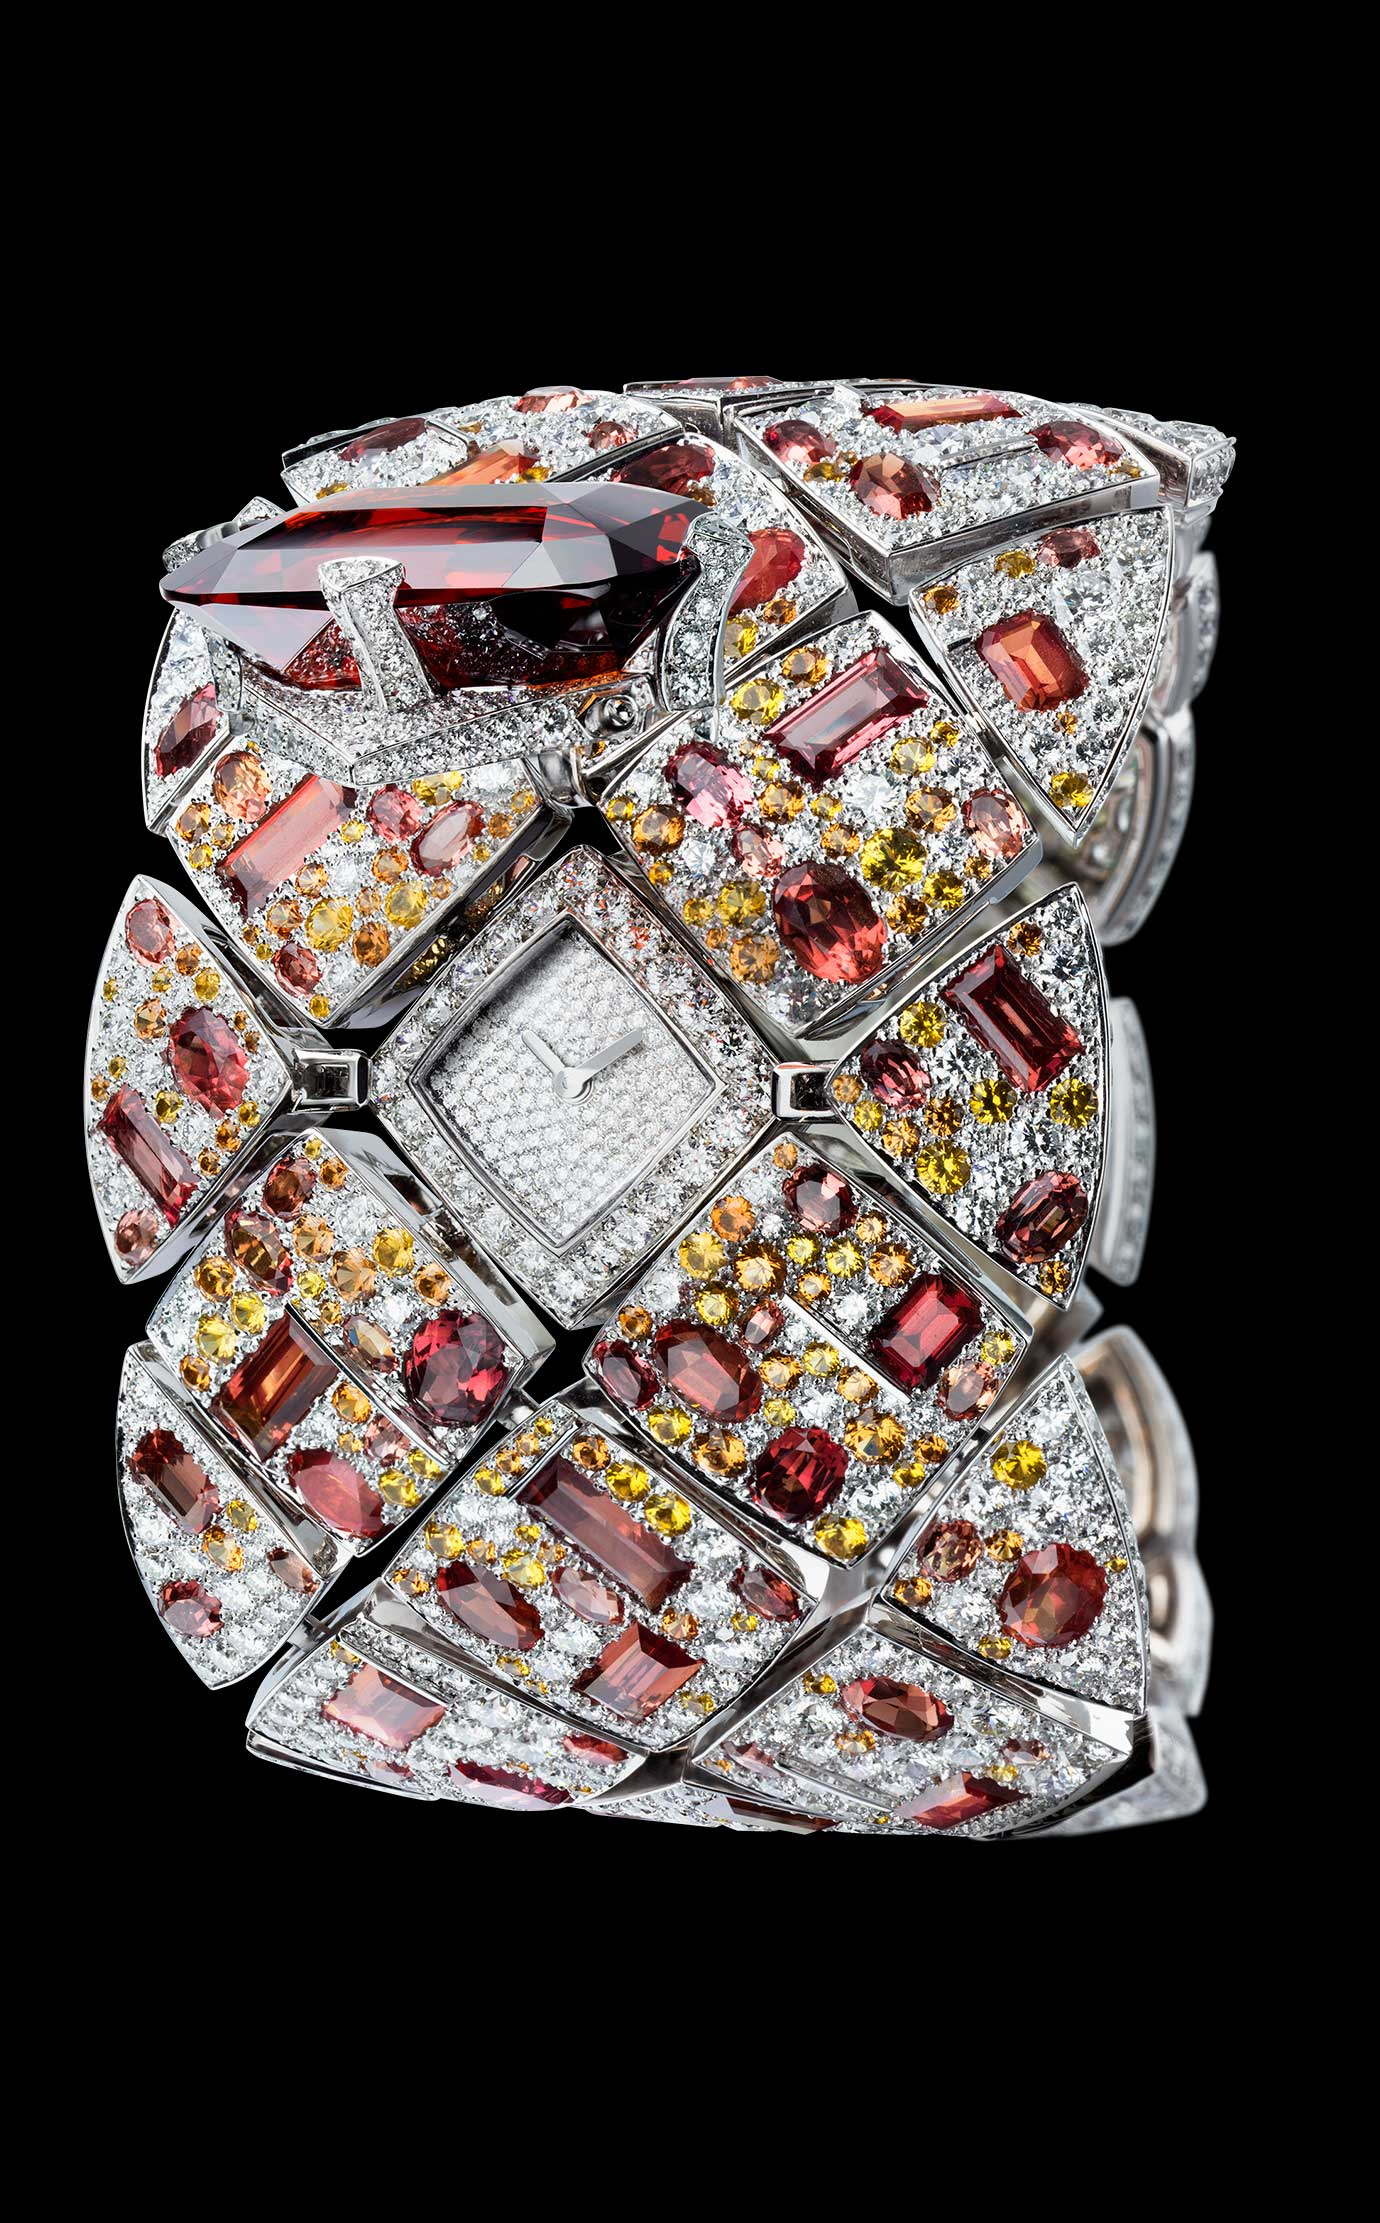 Les Eternelles de CHANEL. Secret cuff watch in 18K white gold. 39.92-carat crimson garnet. - Open - Enlarged view